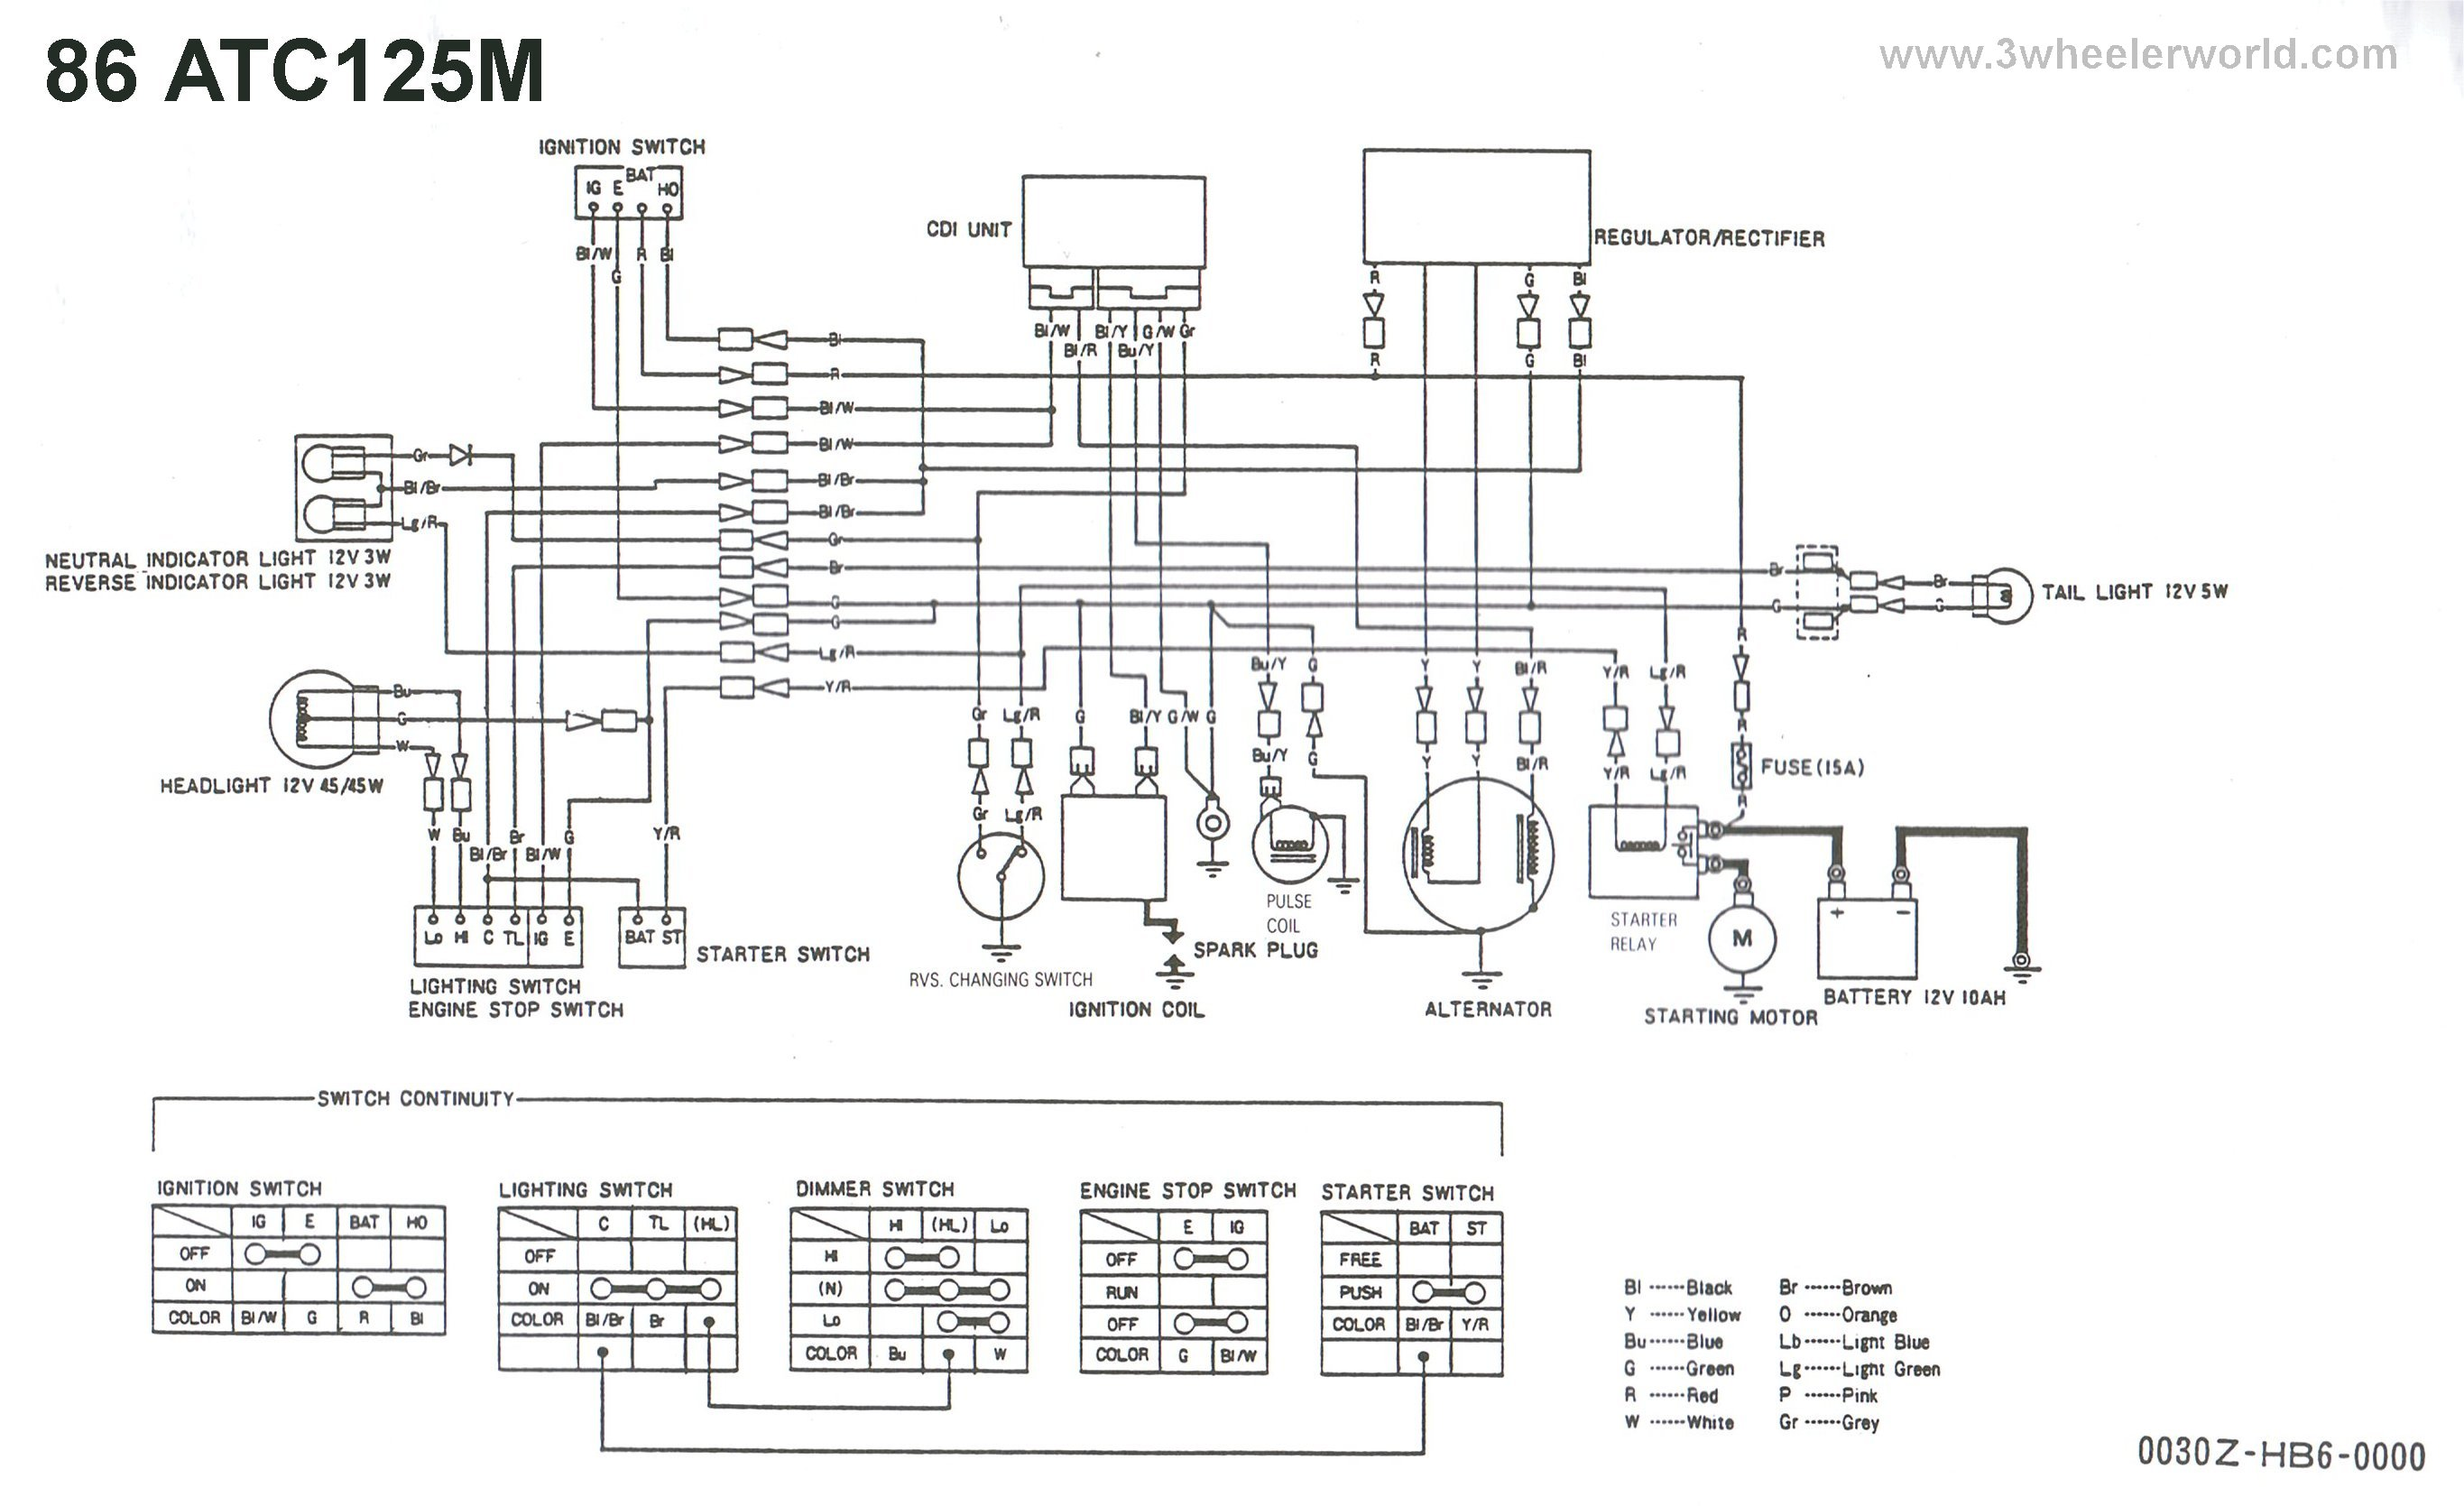 lighting diagrams, pinout diagrams, motor diagrams, honda motorcycle repair diagrams, transformer diagrams, sincgars radio configurations diagrams, switch diagrams, engine diagrams, electrical diagrams, hvac diagrams, troubleshooting diagrams, electronic circuit diagrams, gmc fuse box diagrams, friendship bracelet diagrams, snatch block diagrams, internet of things diagrams, series and parallel circuits diagrams, battery diagrams, led circuit diagrams, smart car diagrams, on 81 cr125 wiring diagram